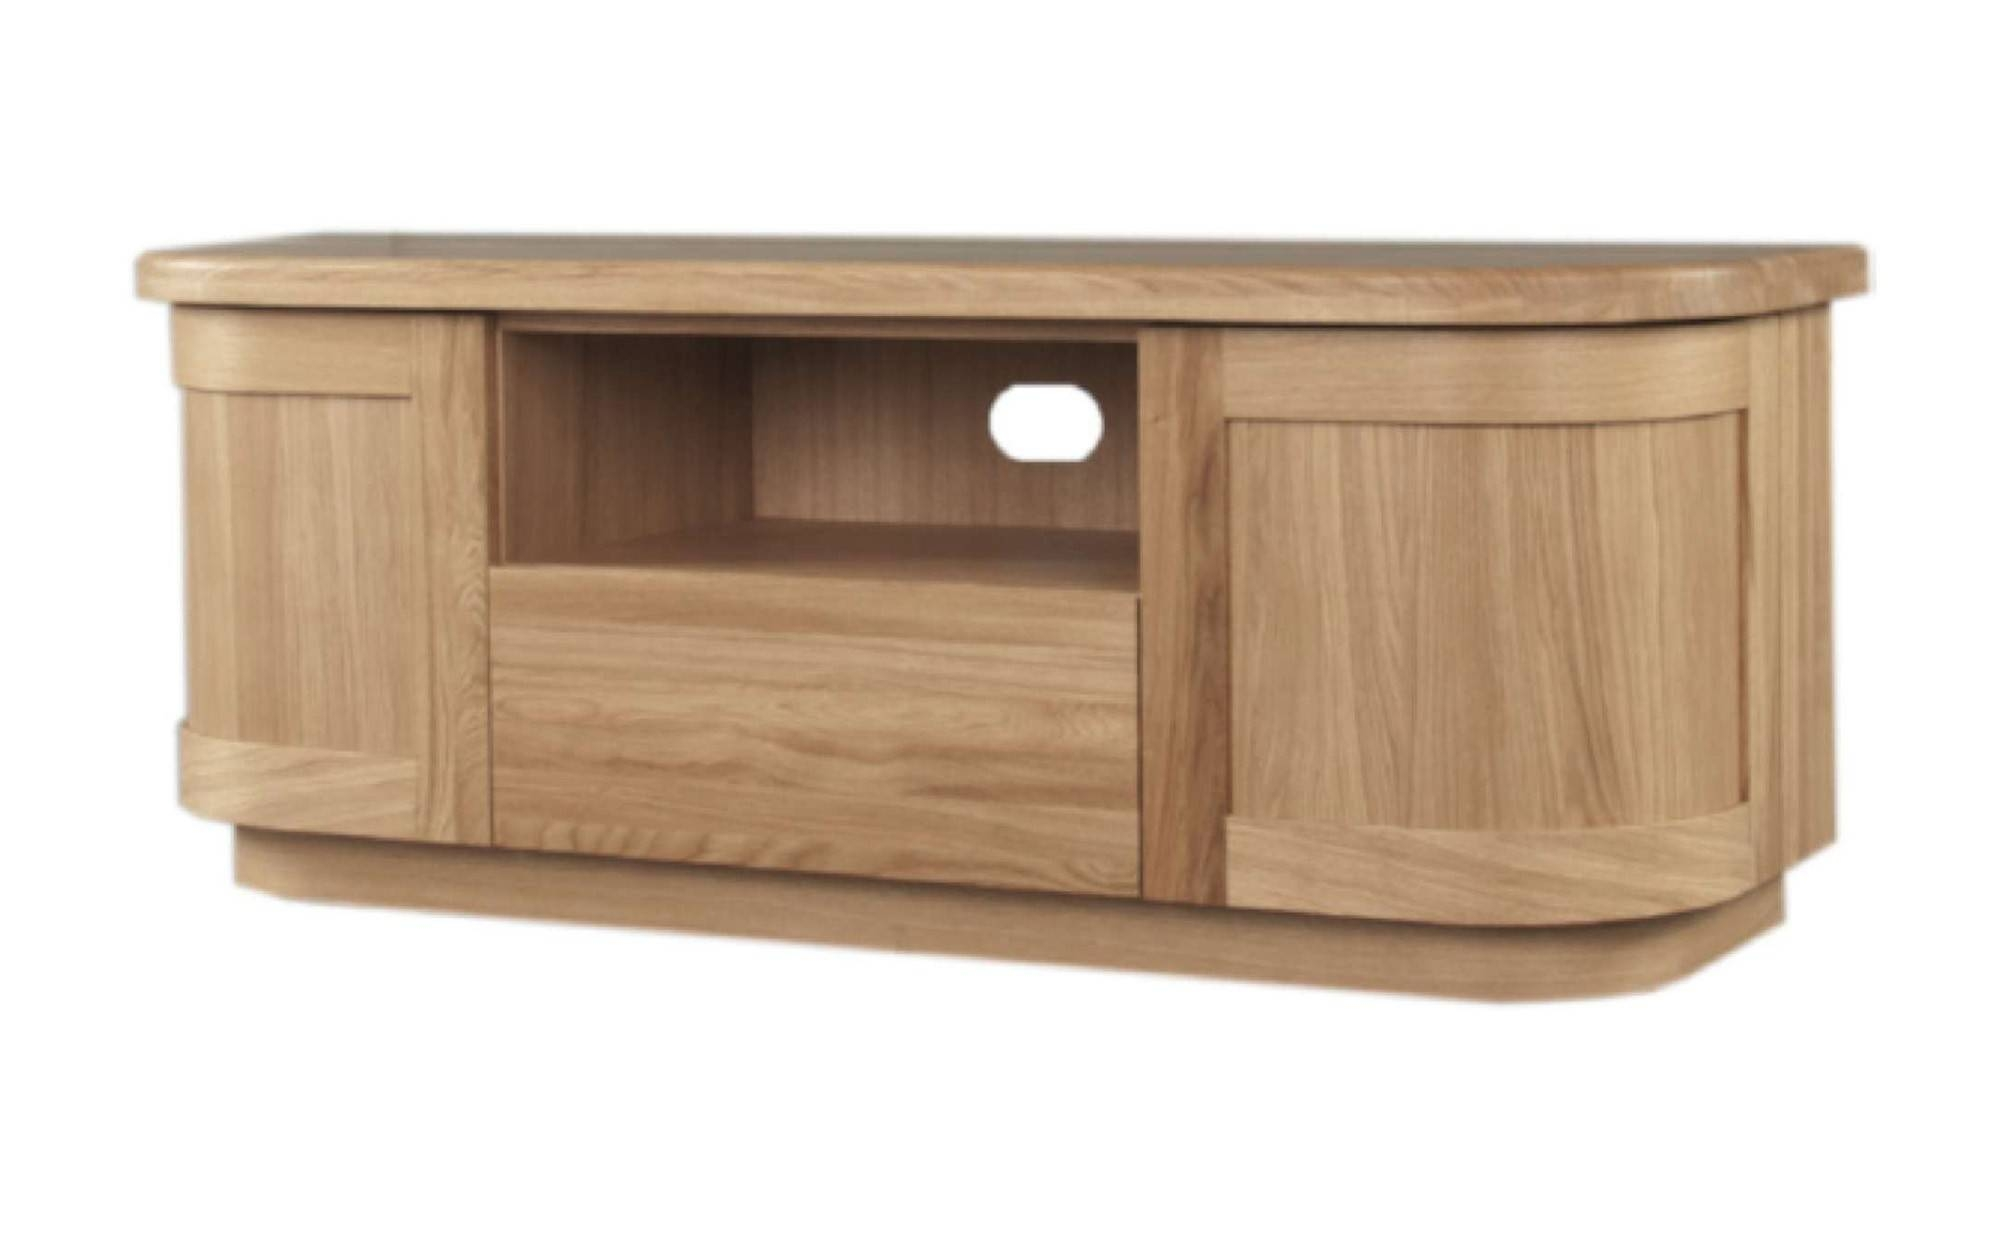 Sicily Solid Oak Tv Unit | Ice Interiors pertaining to Oak Tv Cabinets With Doors (Image 13 of 15)